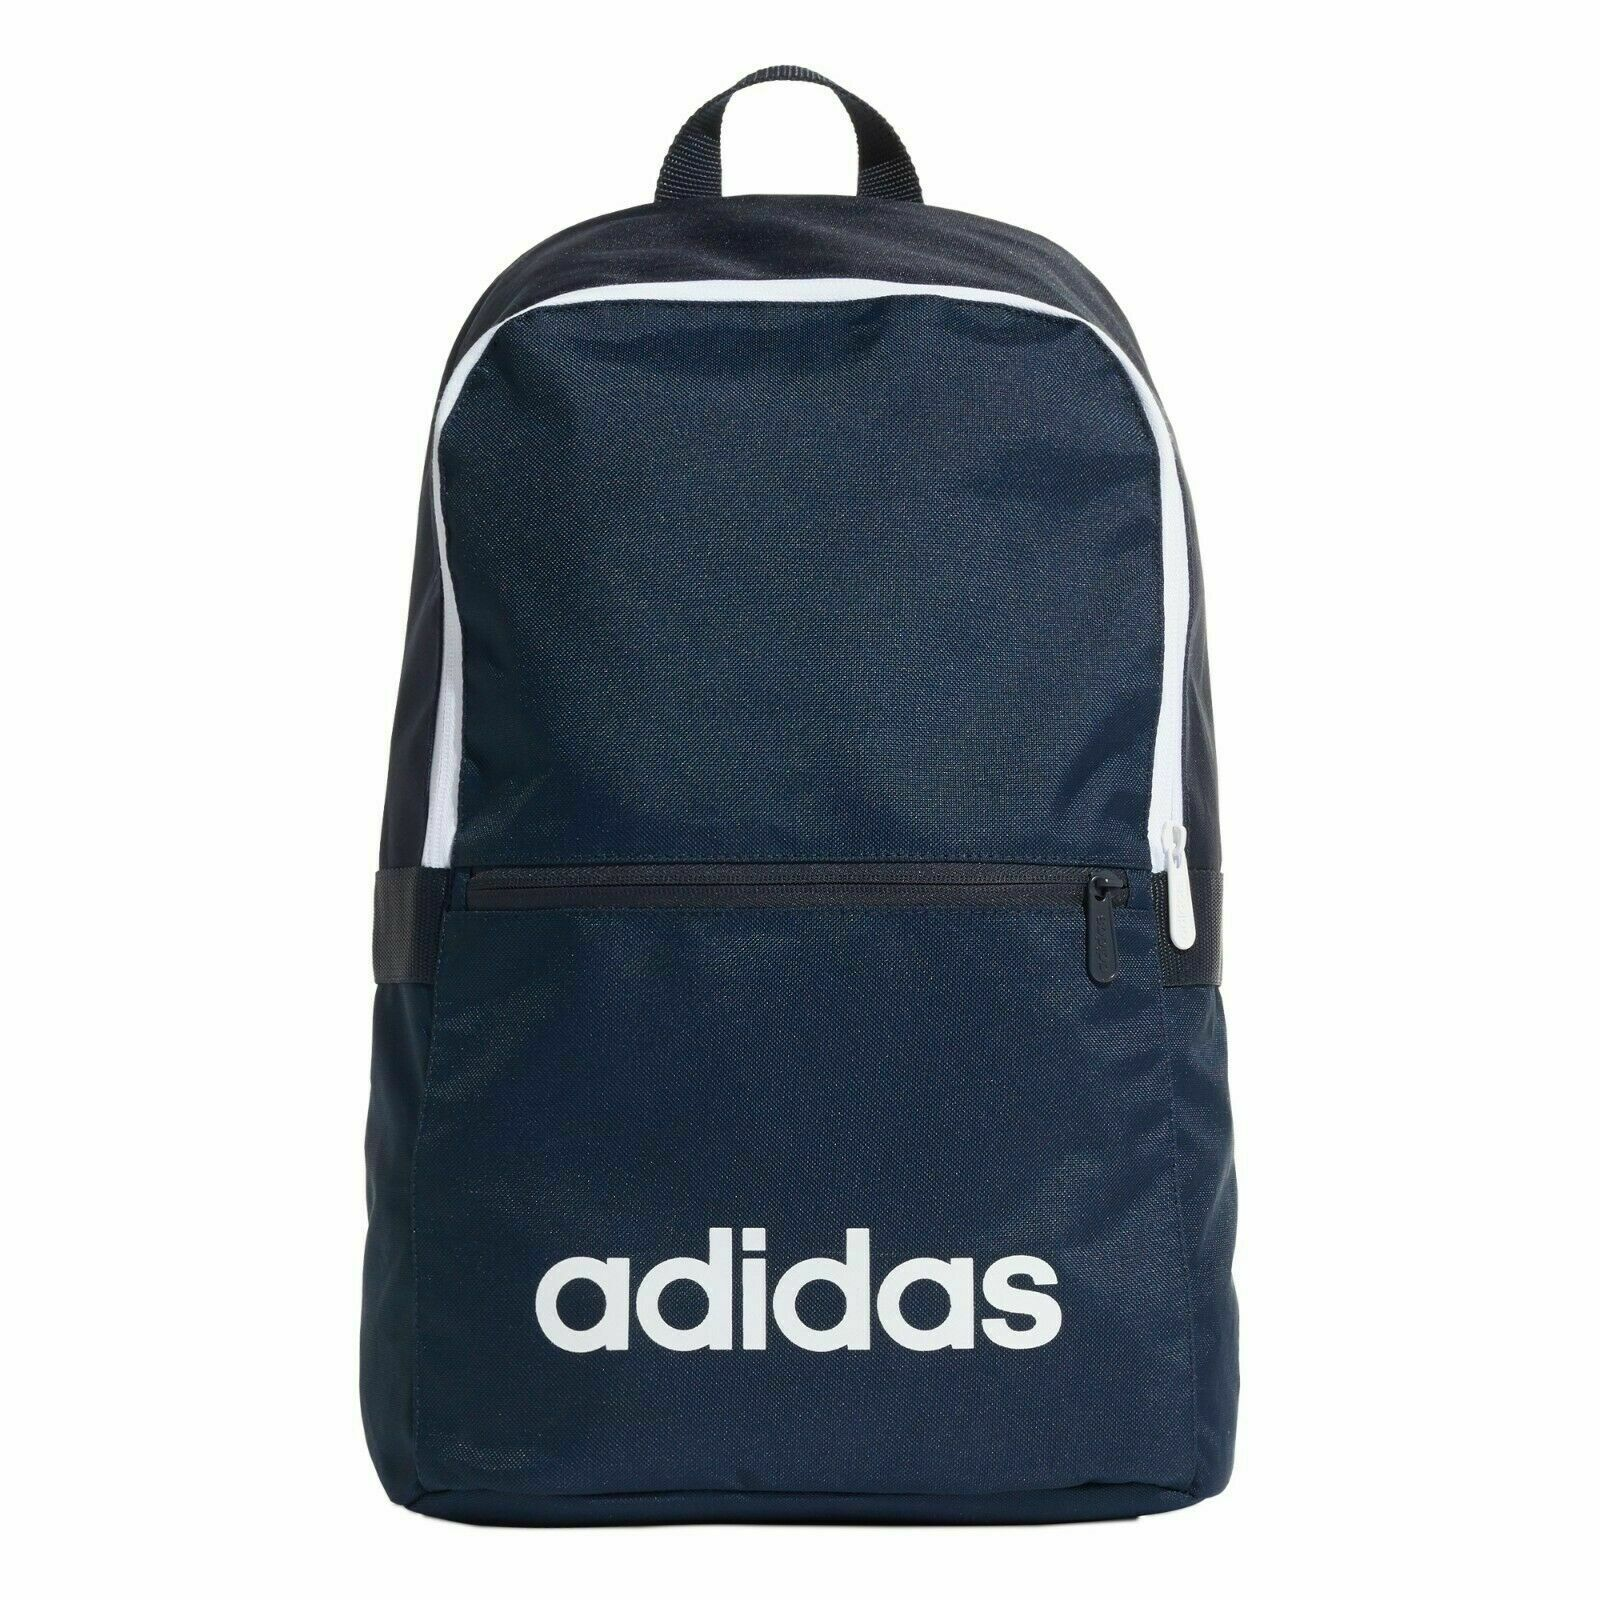 Adidas Linear Classic Daily Backpack - Valley Sports UK